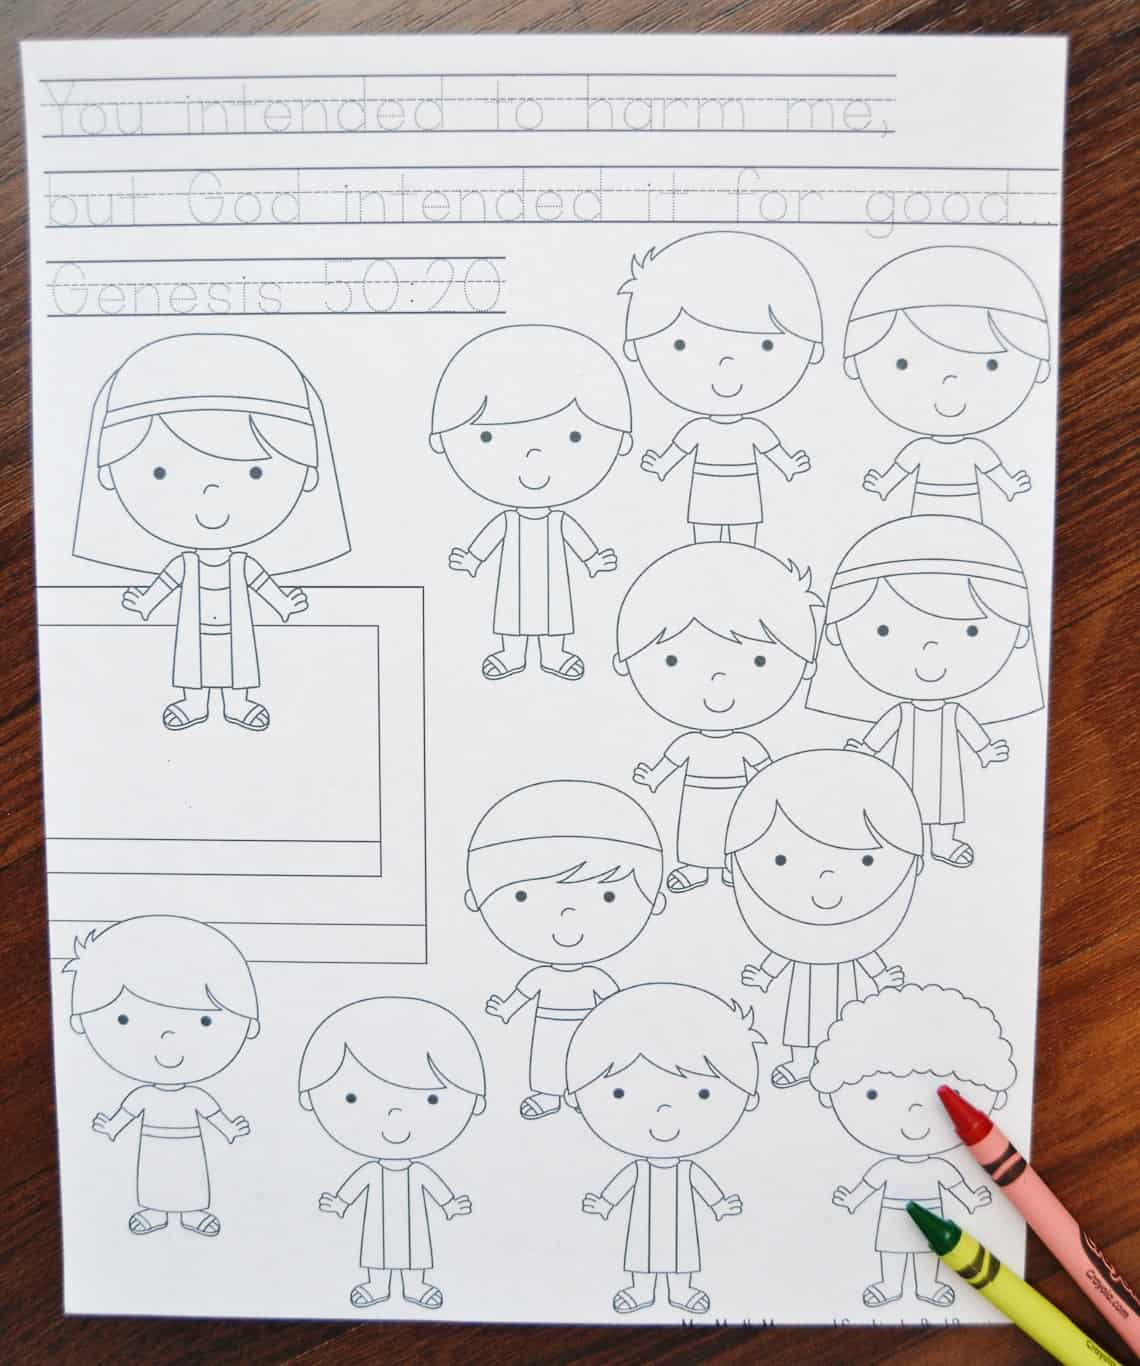 coloring page #3 with crayons